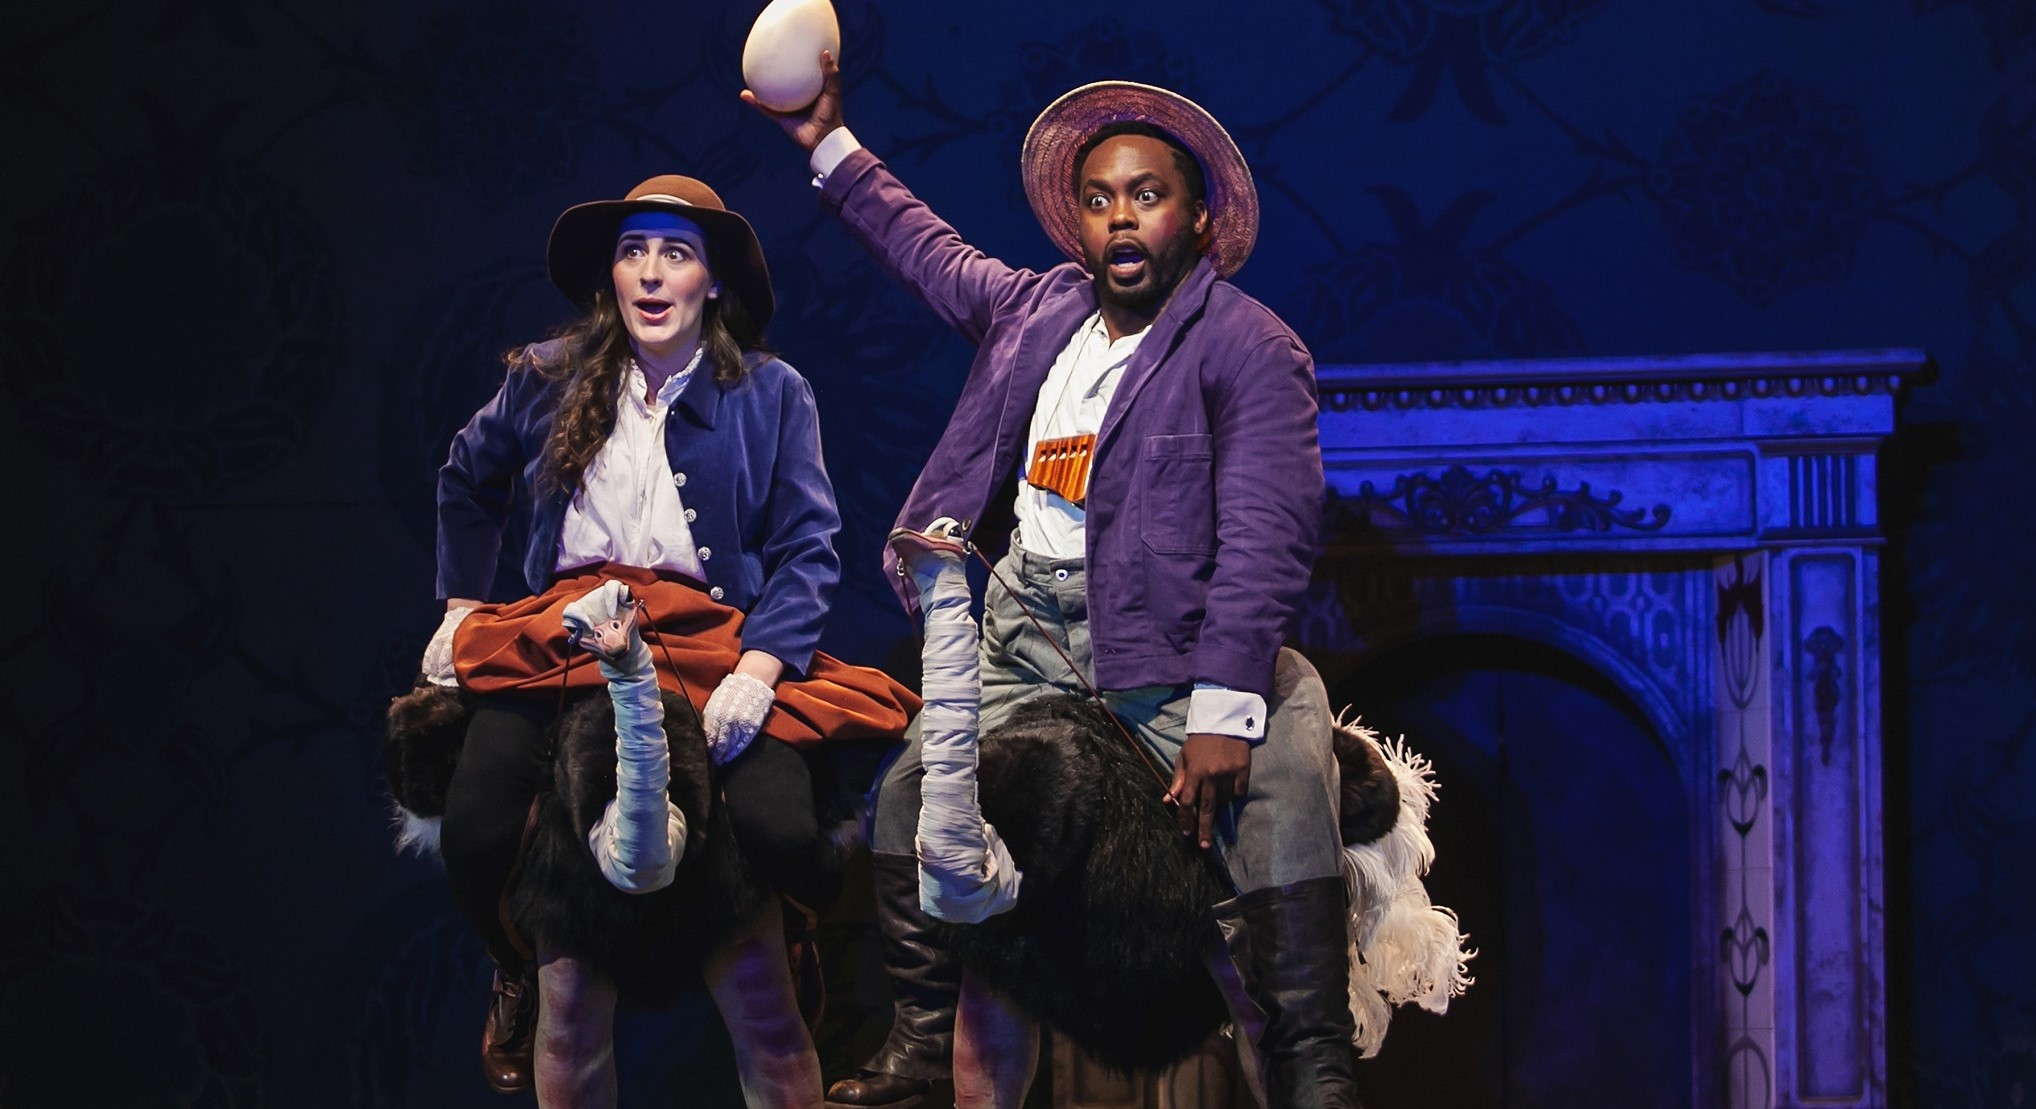 Two opera singers ride ostriches. One is holding up an ostrich egg with a surprised look on his face.